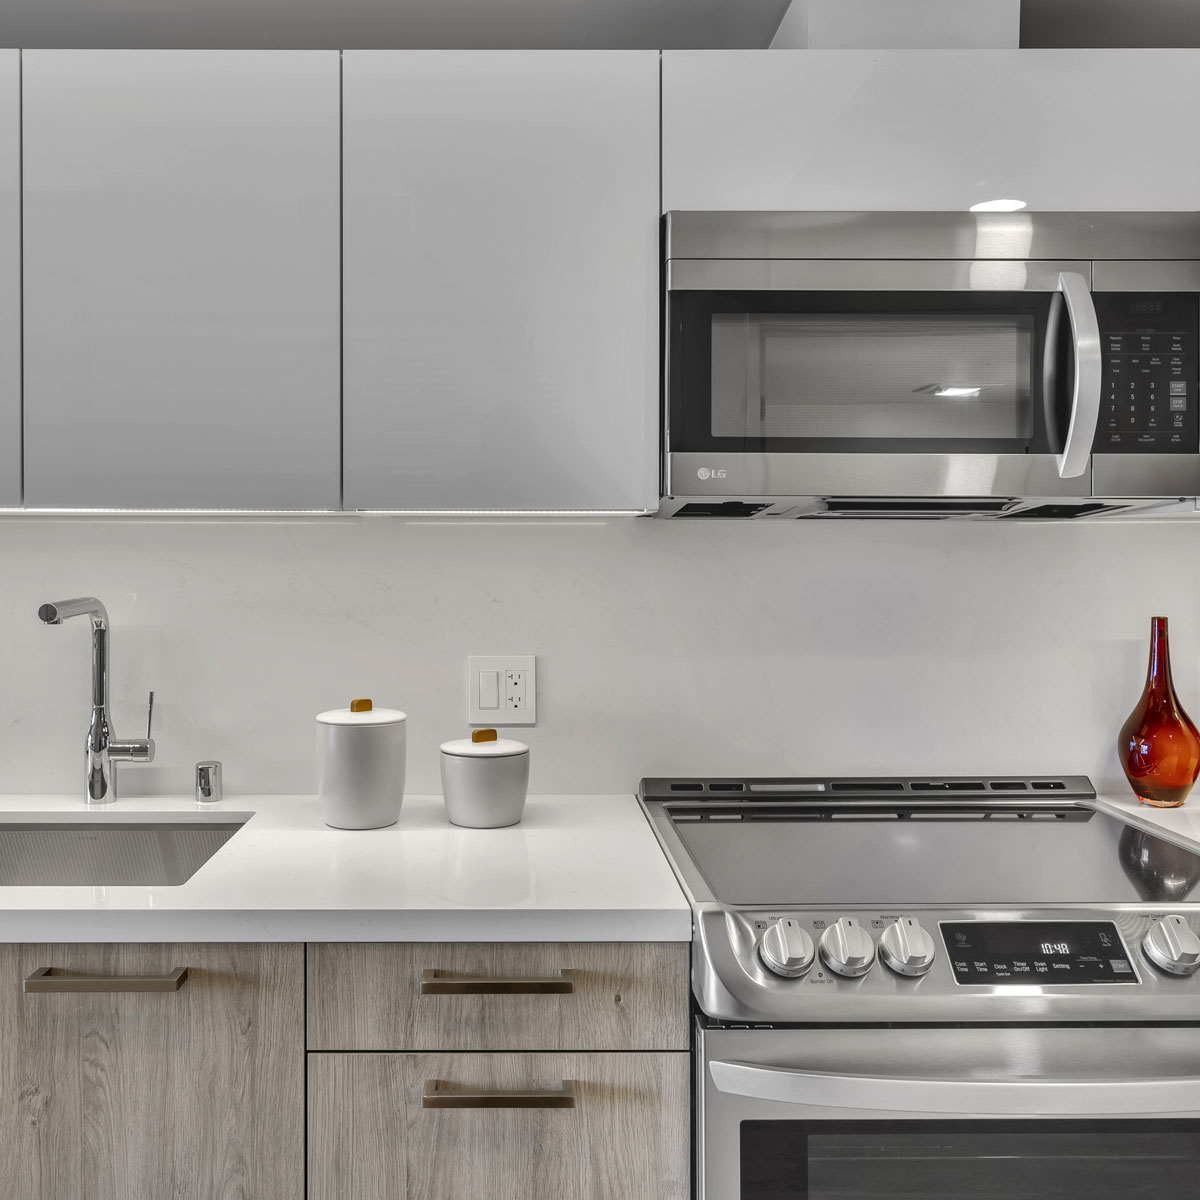 Stainless Steel Appliances by LG